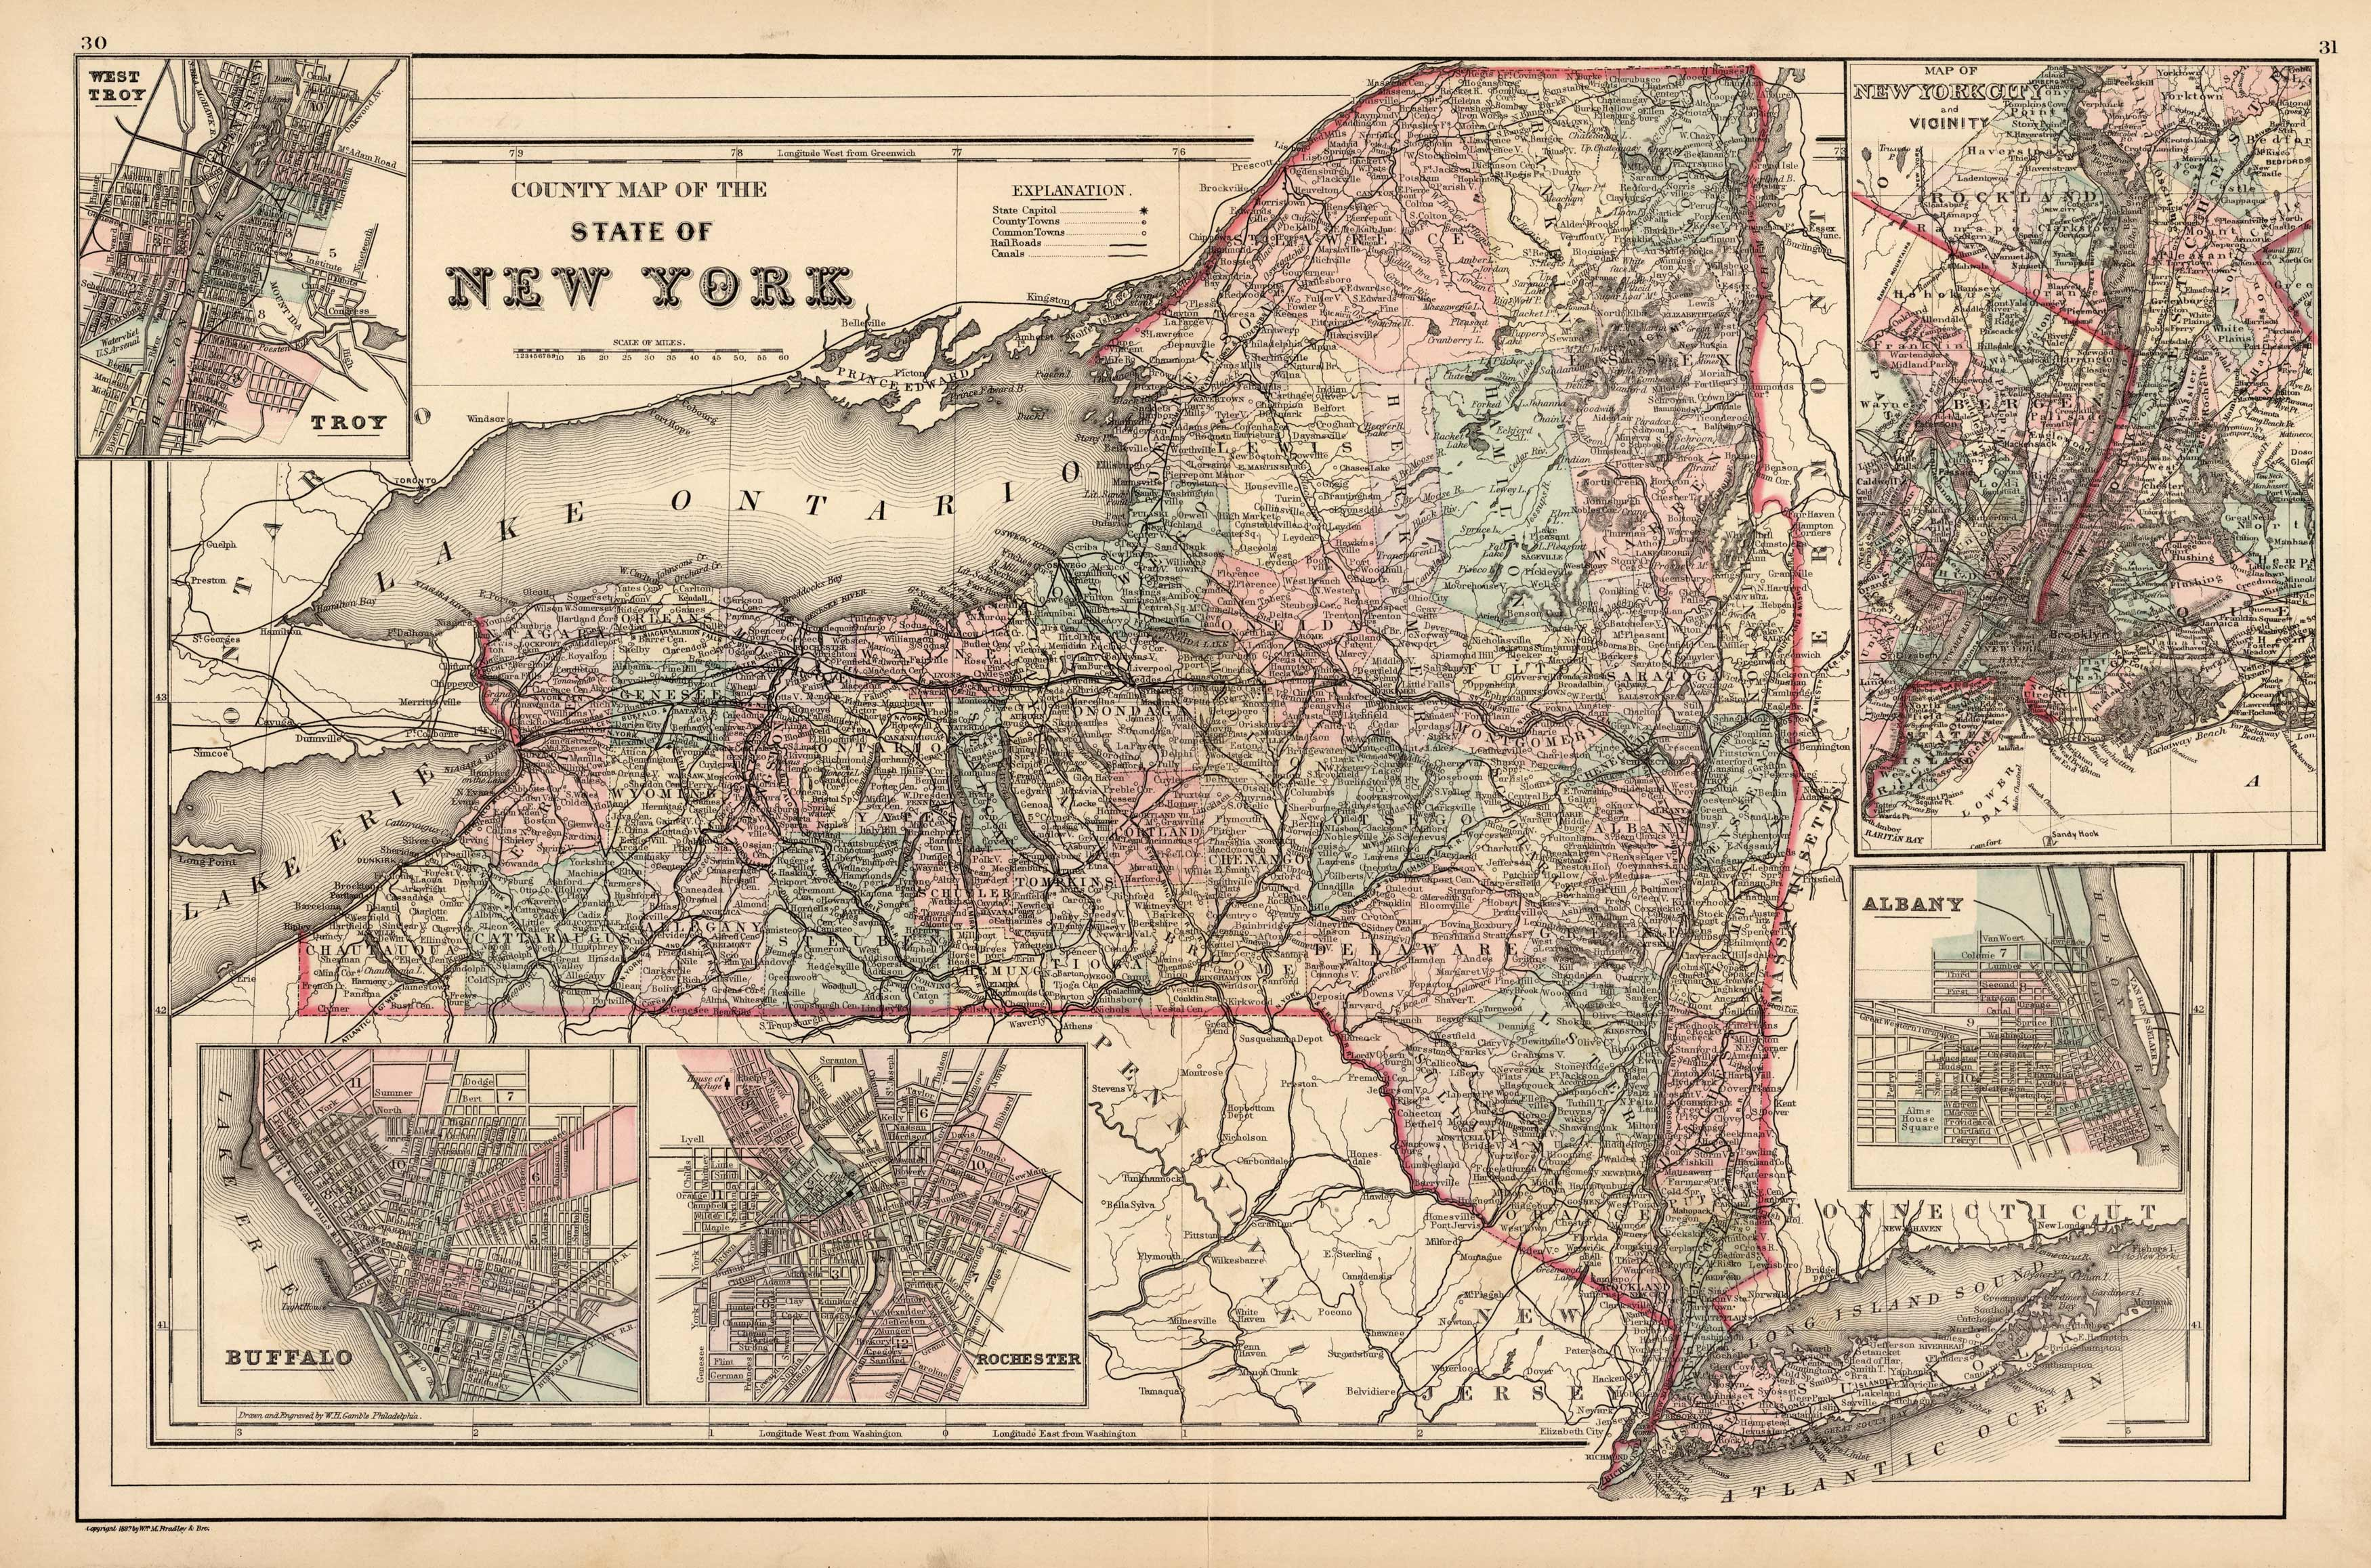 County Map of the State of New York (with inset maps of Troy